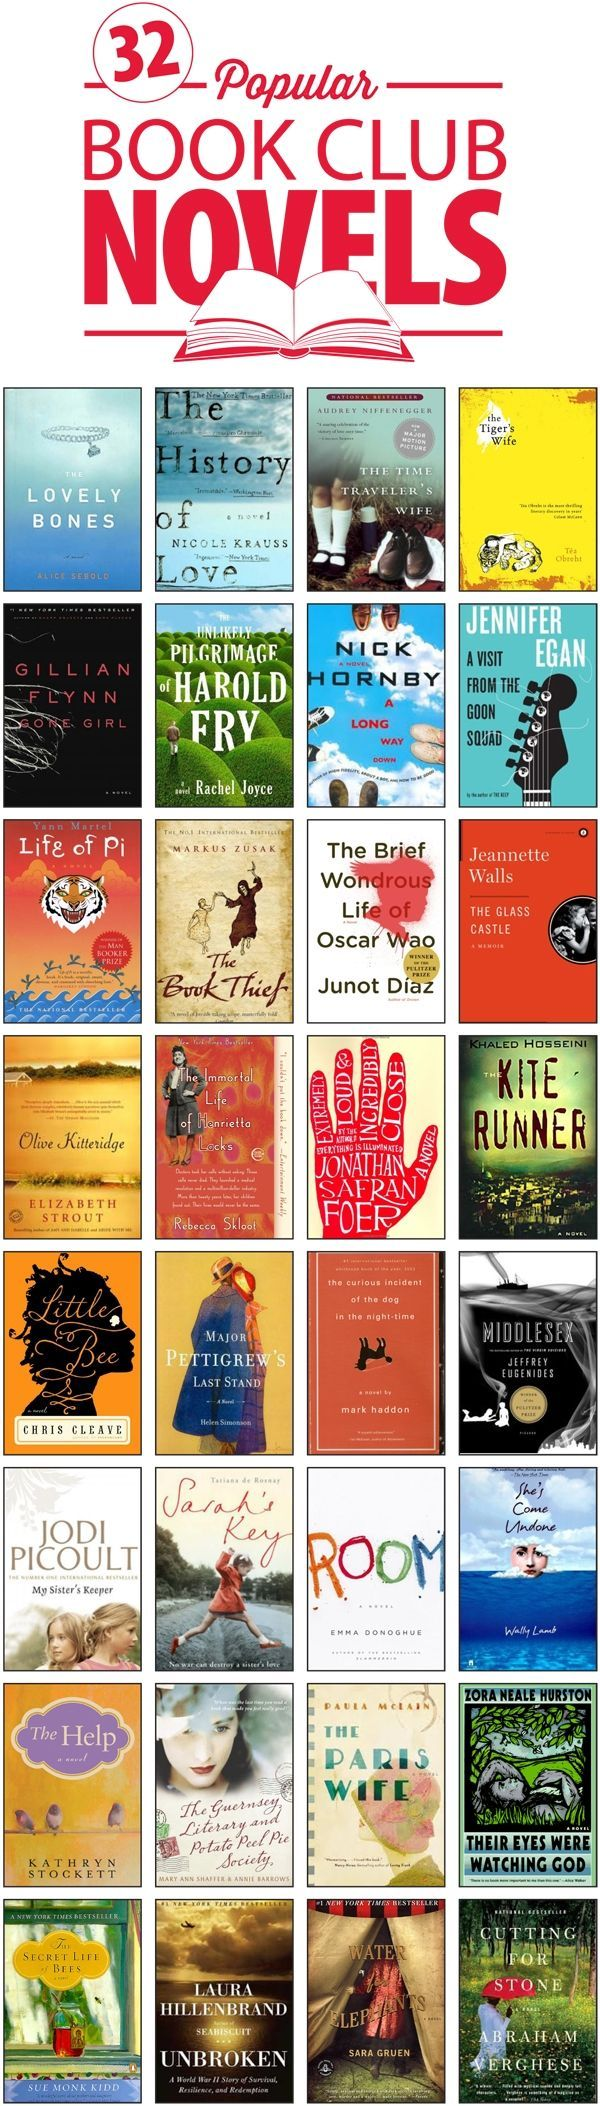 Top 32 Popular Fiction Books for BookClubs - Half Price Books Blog - http://HPB.com